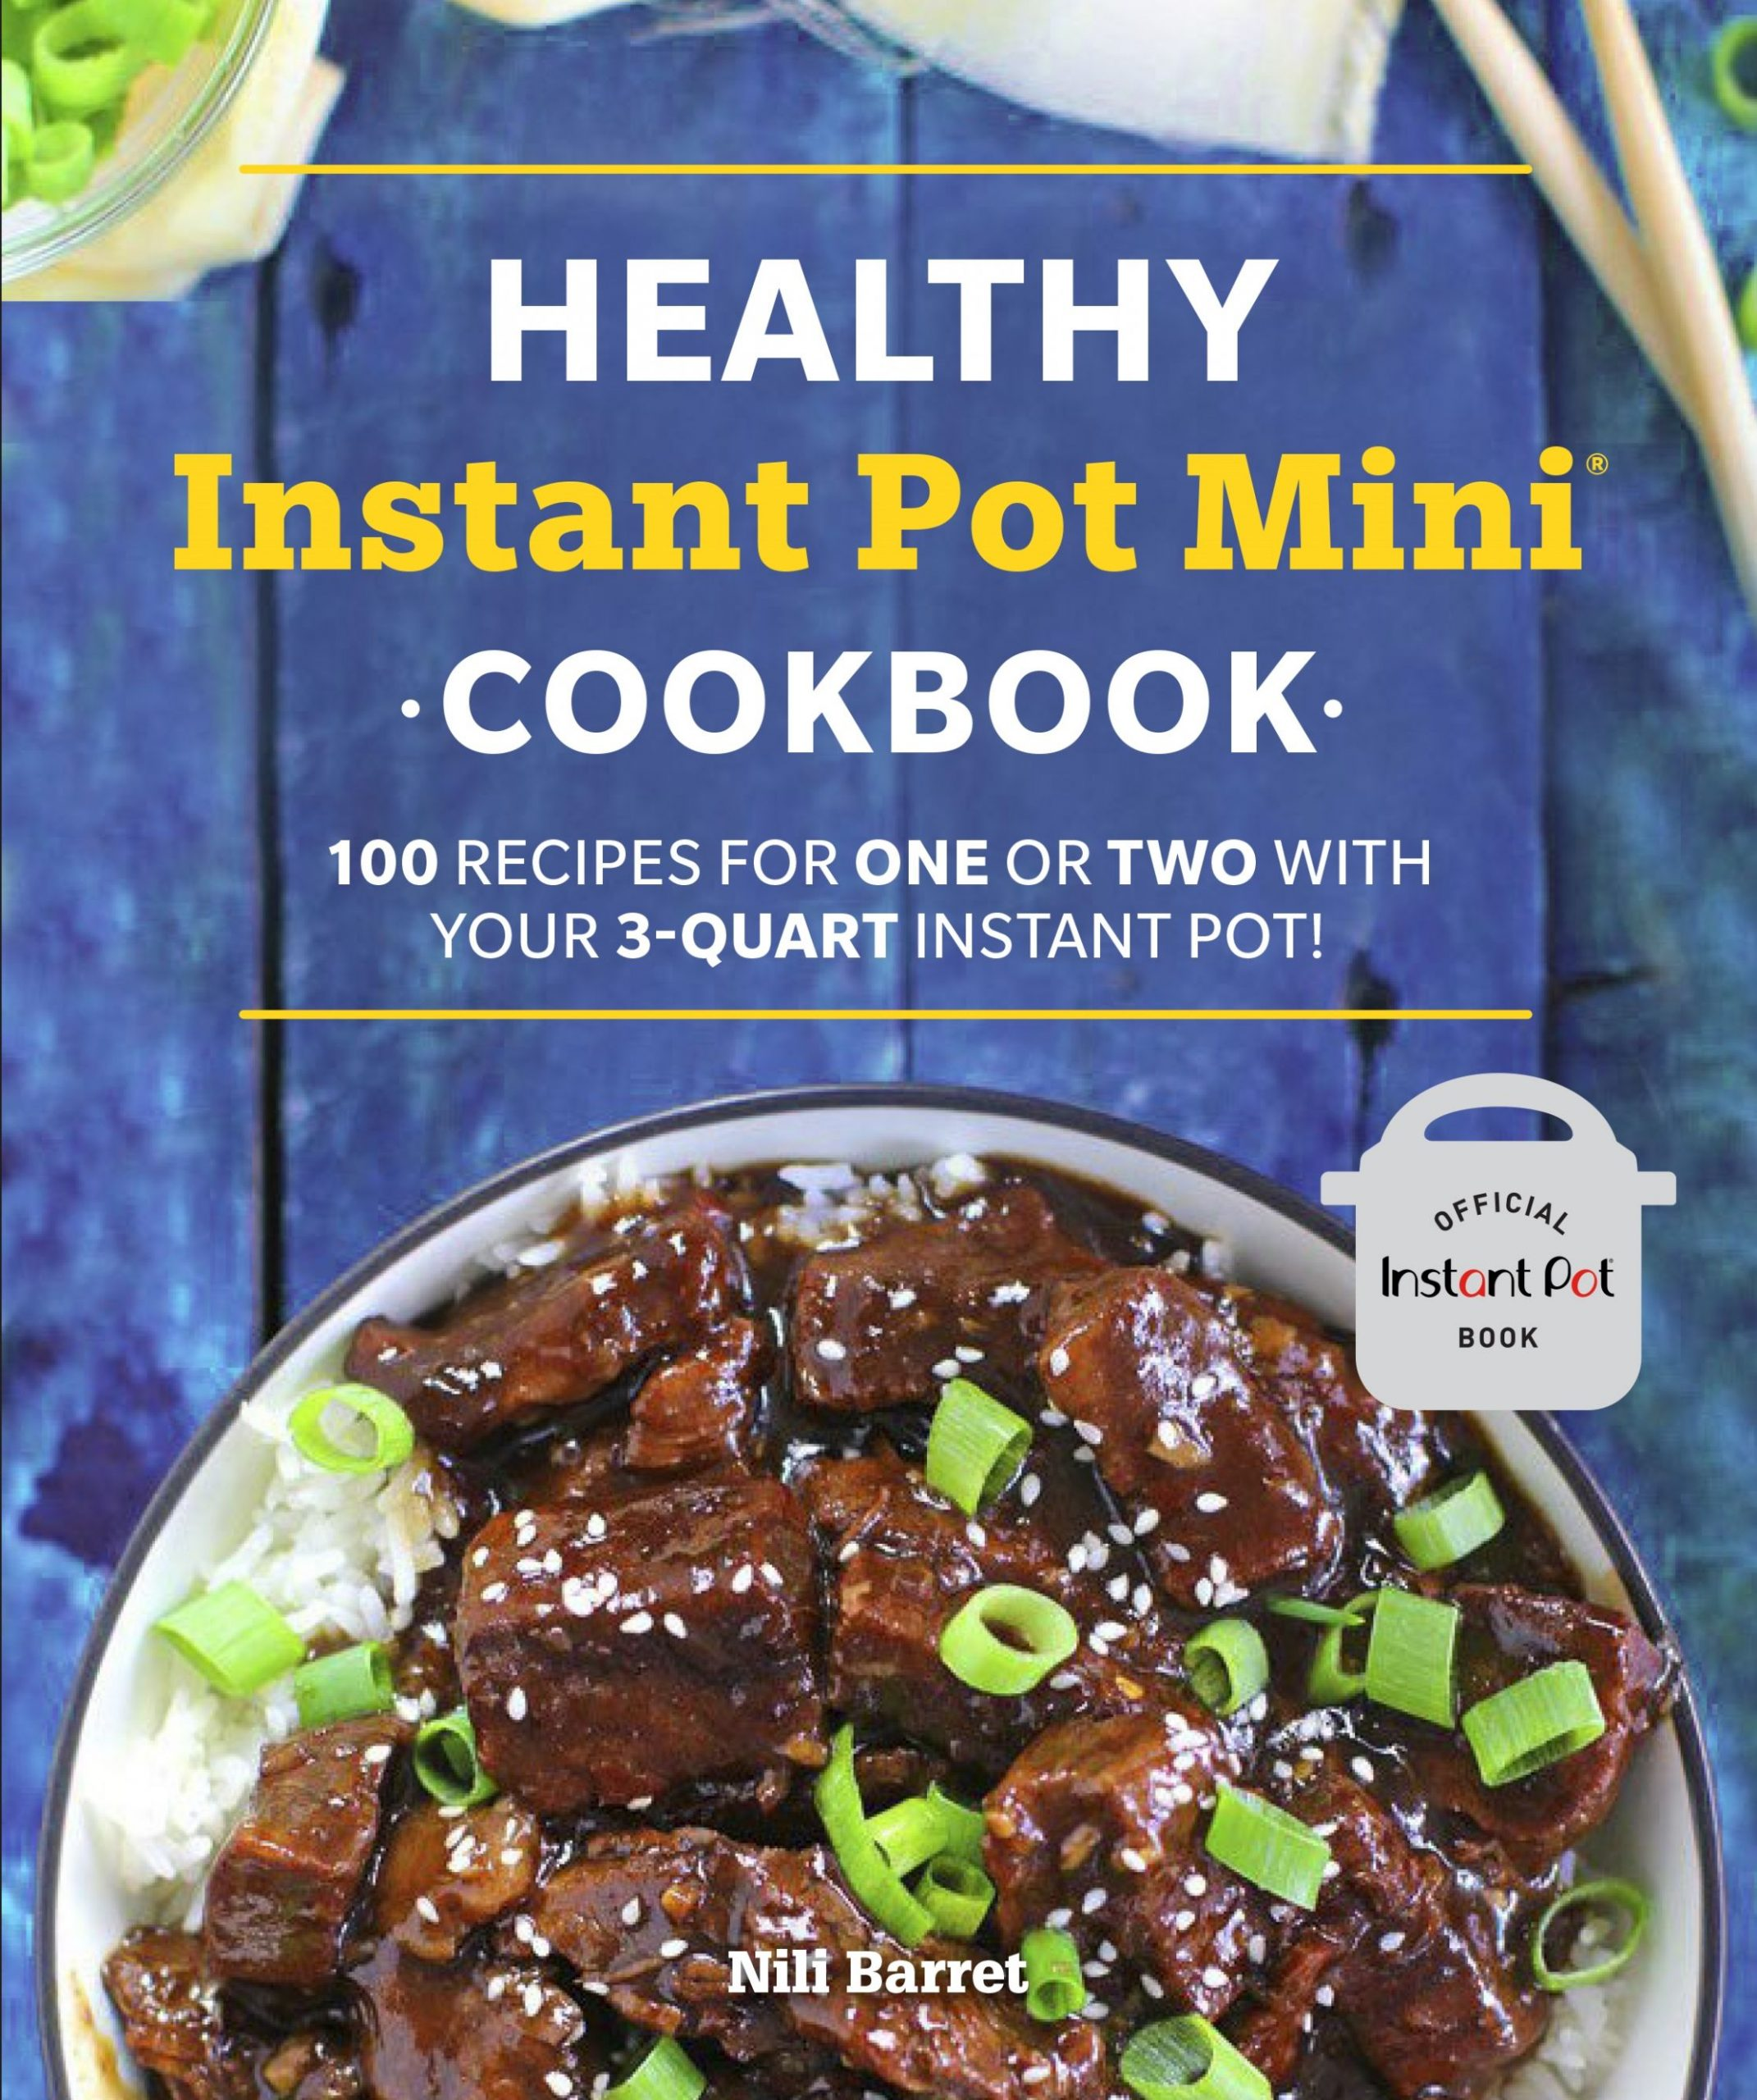 Healthy Instant Pot Mini Cookbook by Nili Barrett - Penguin Books ..